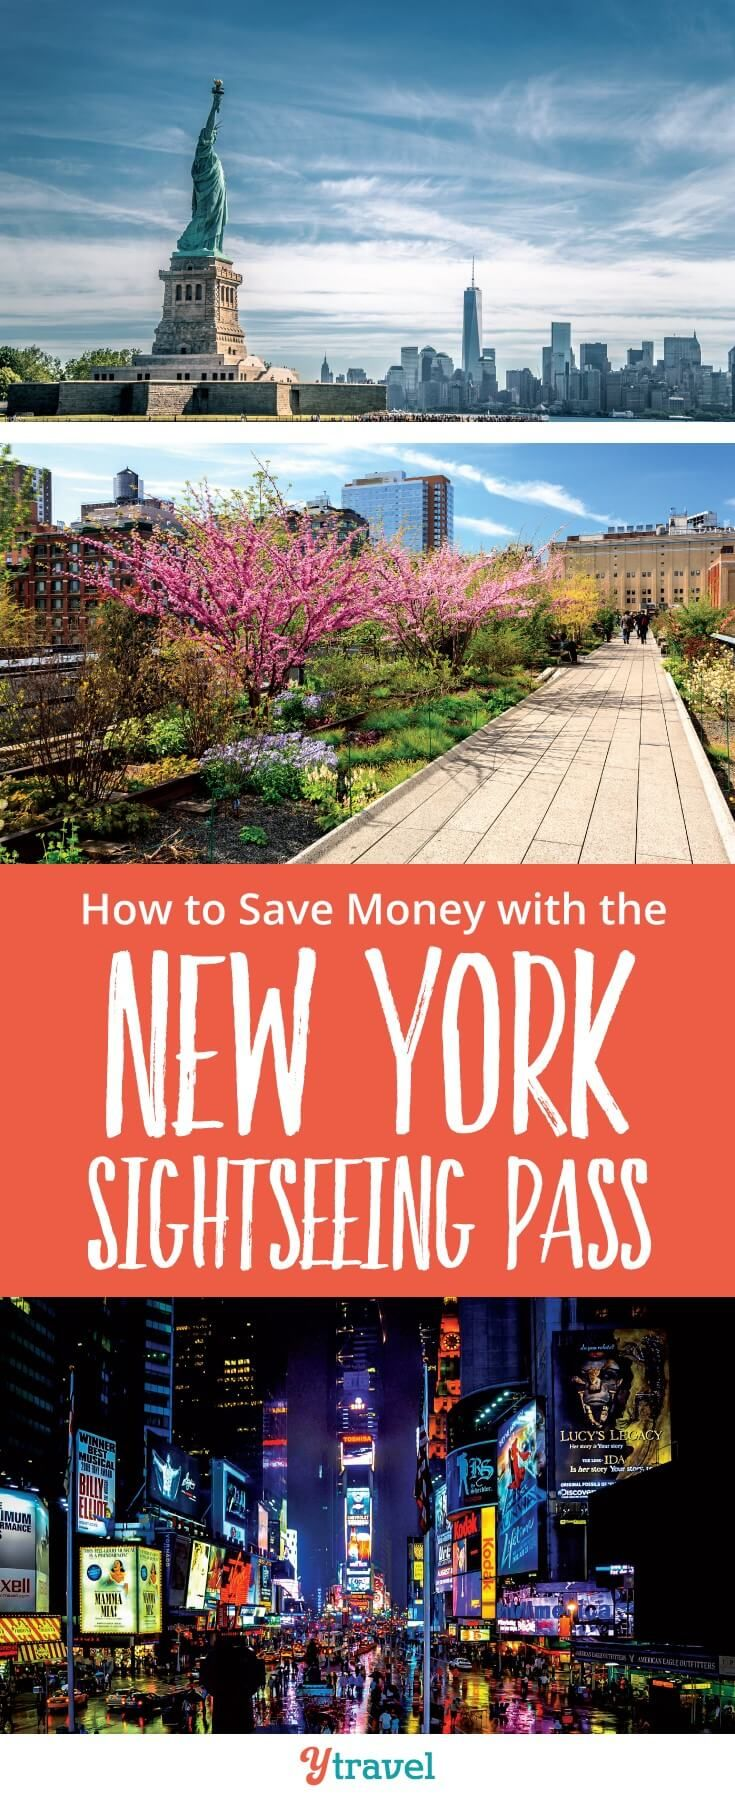 How to save money in New York with the New York Sightseeing pass. We share if the New York attraction passes are worth it and how to get the most out of them when you visit New York City #NYC #NewYork #travel #NY